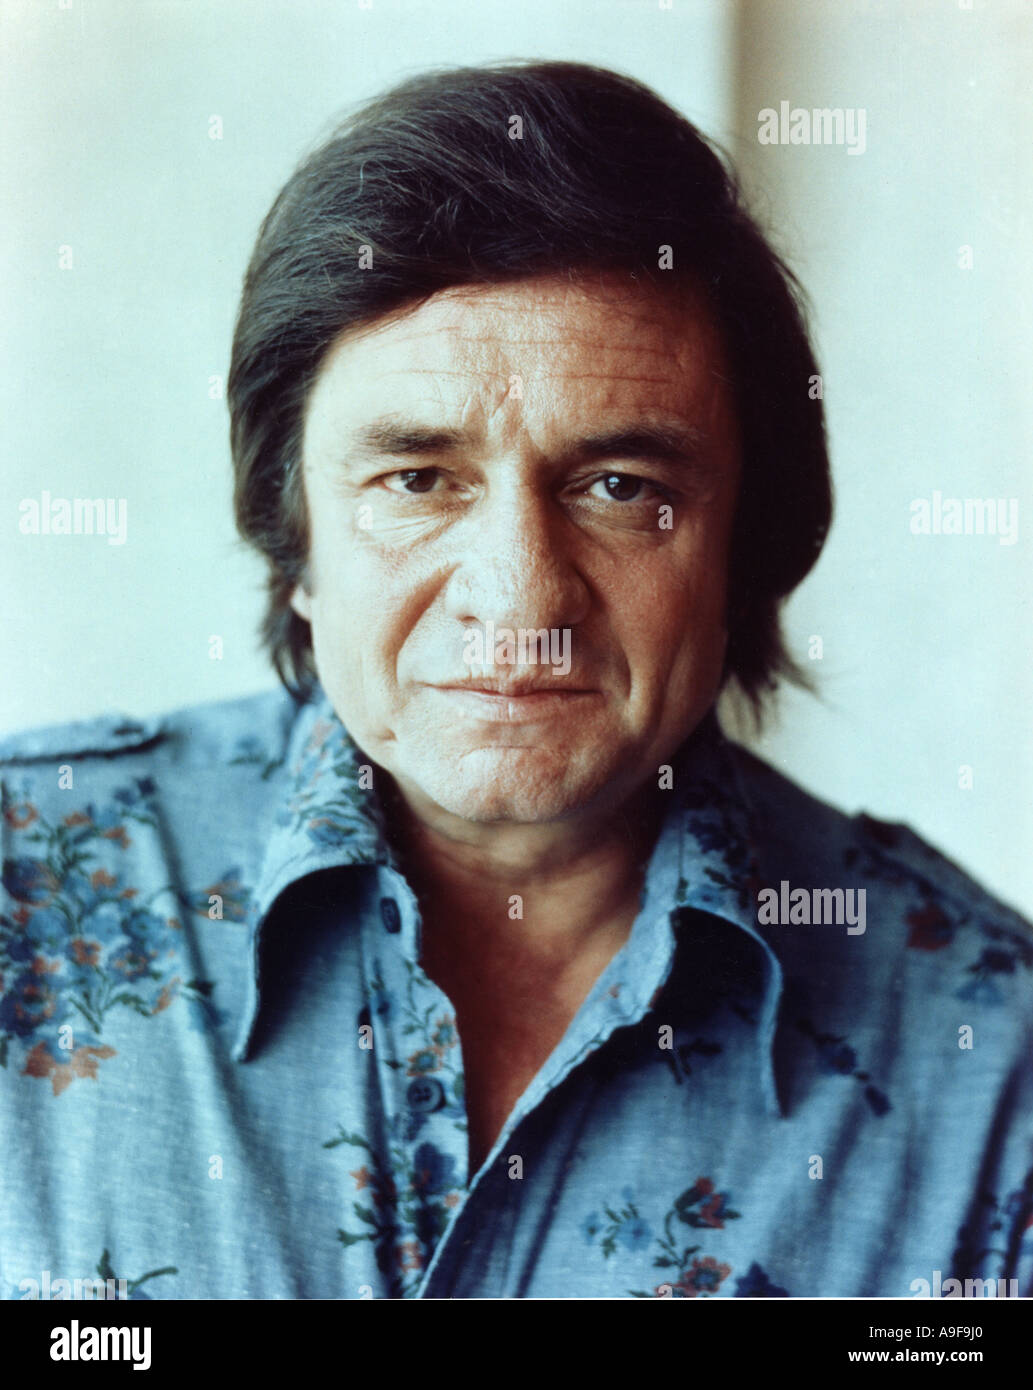 JOHNNY CASH-NOUS Pays muscian Photo Stock